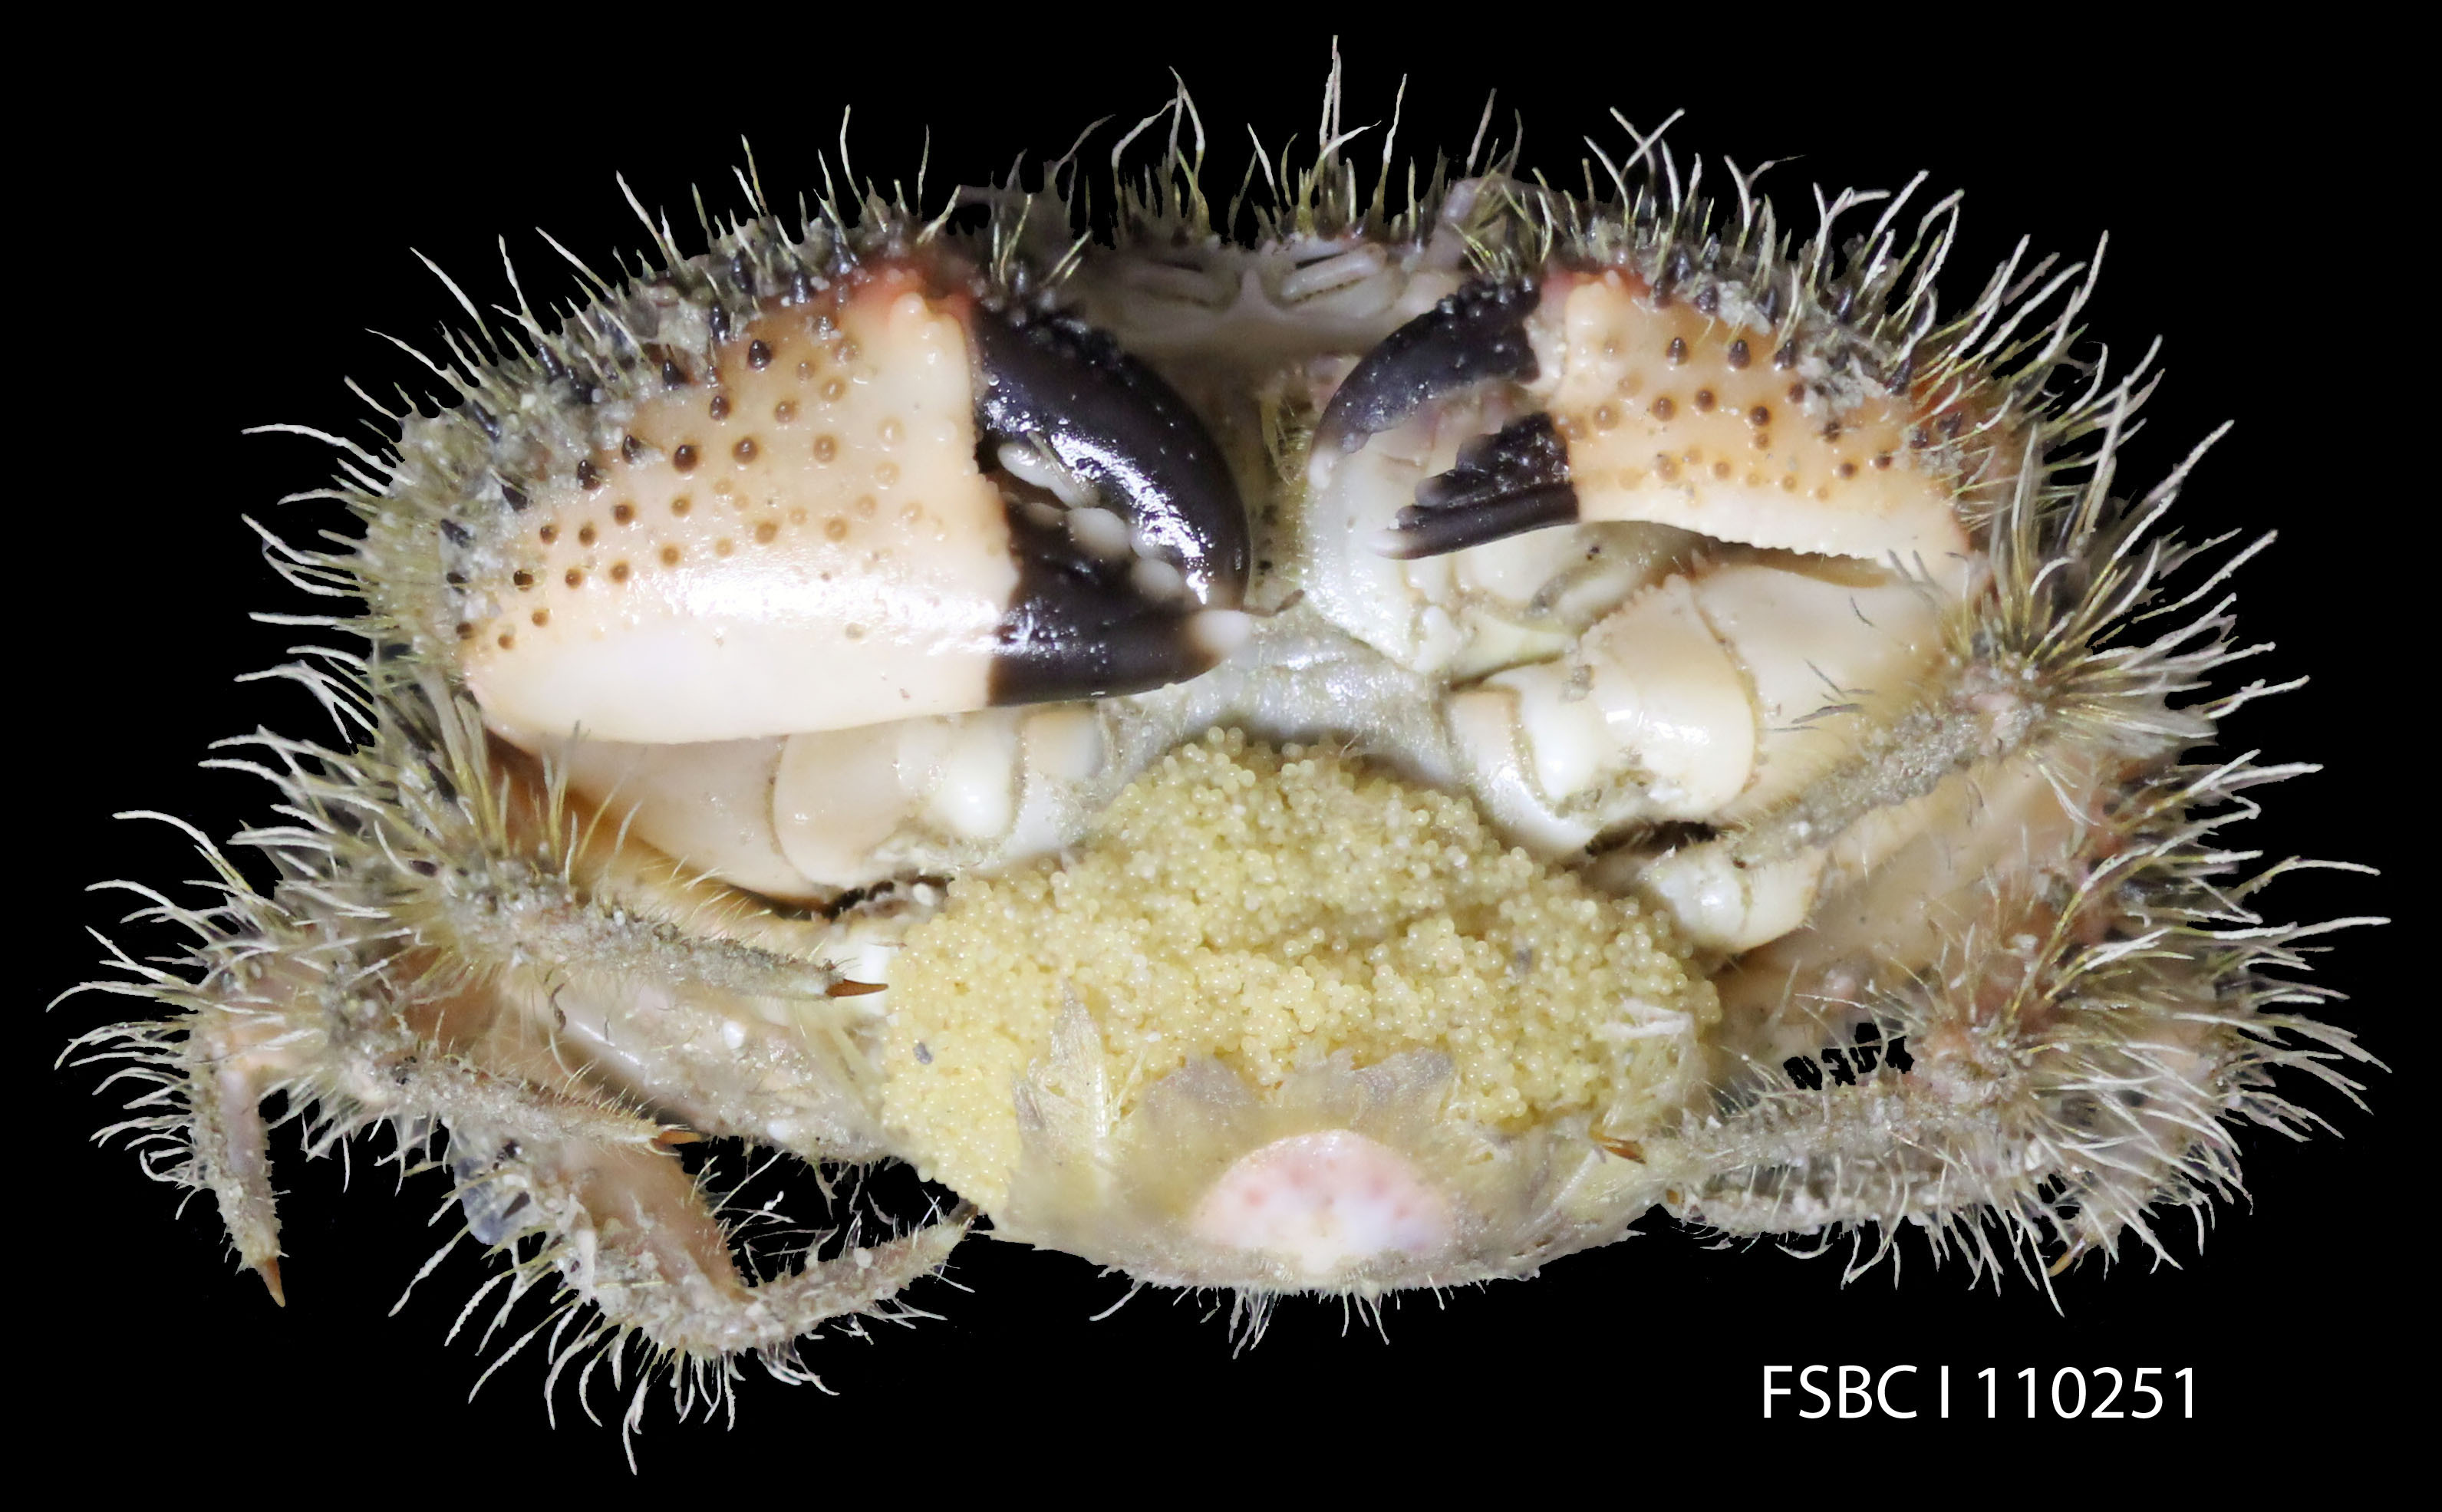 Image of spineback hairy crab